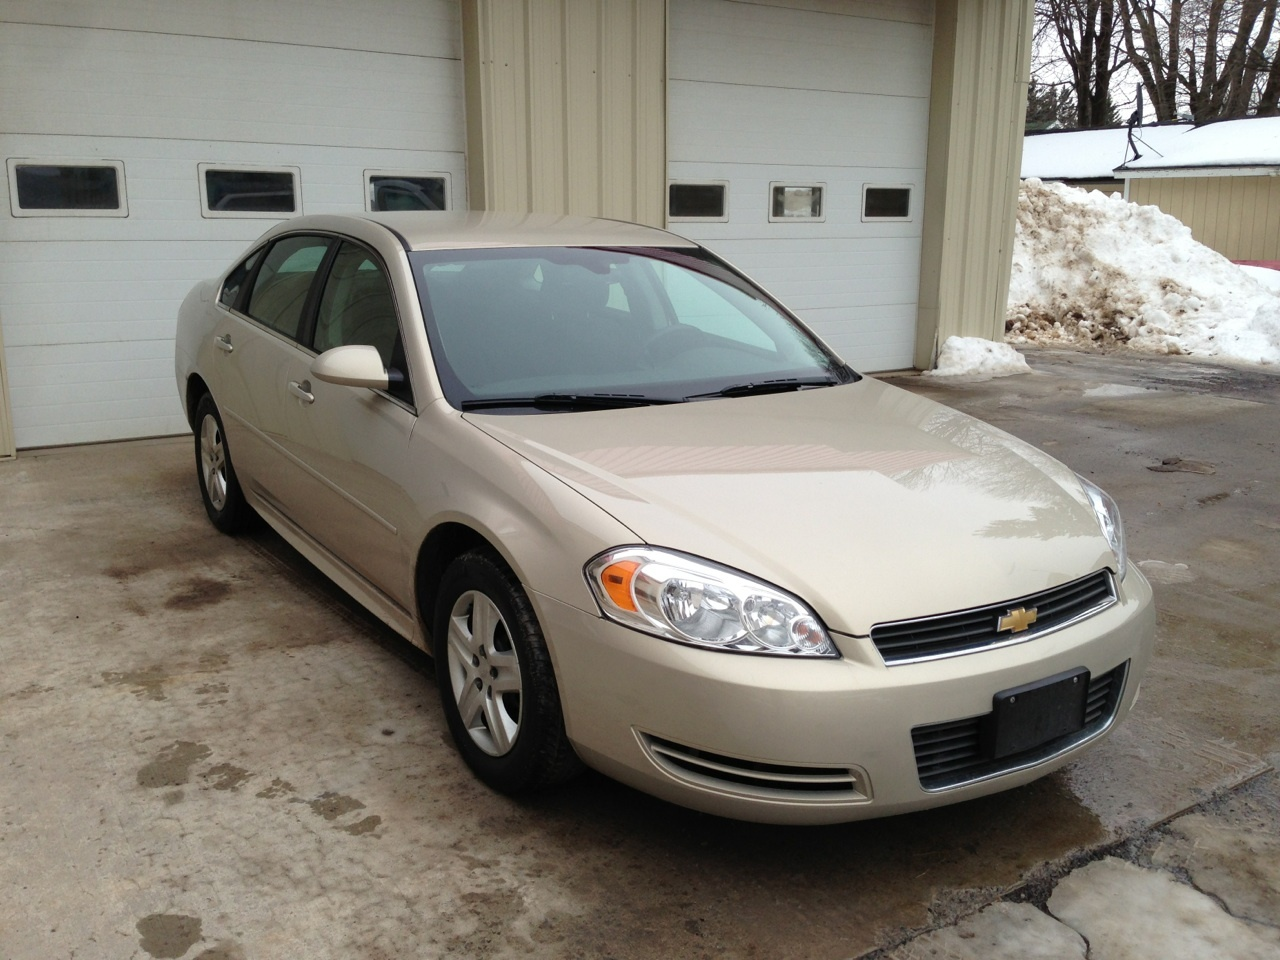 2010 chevrolet impala. Cars Review. Best American Auto & Cars Review